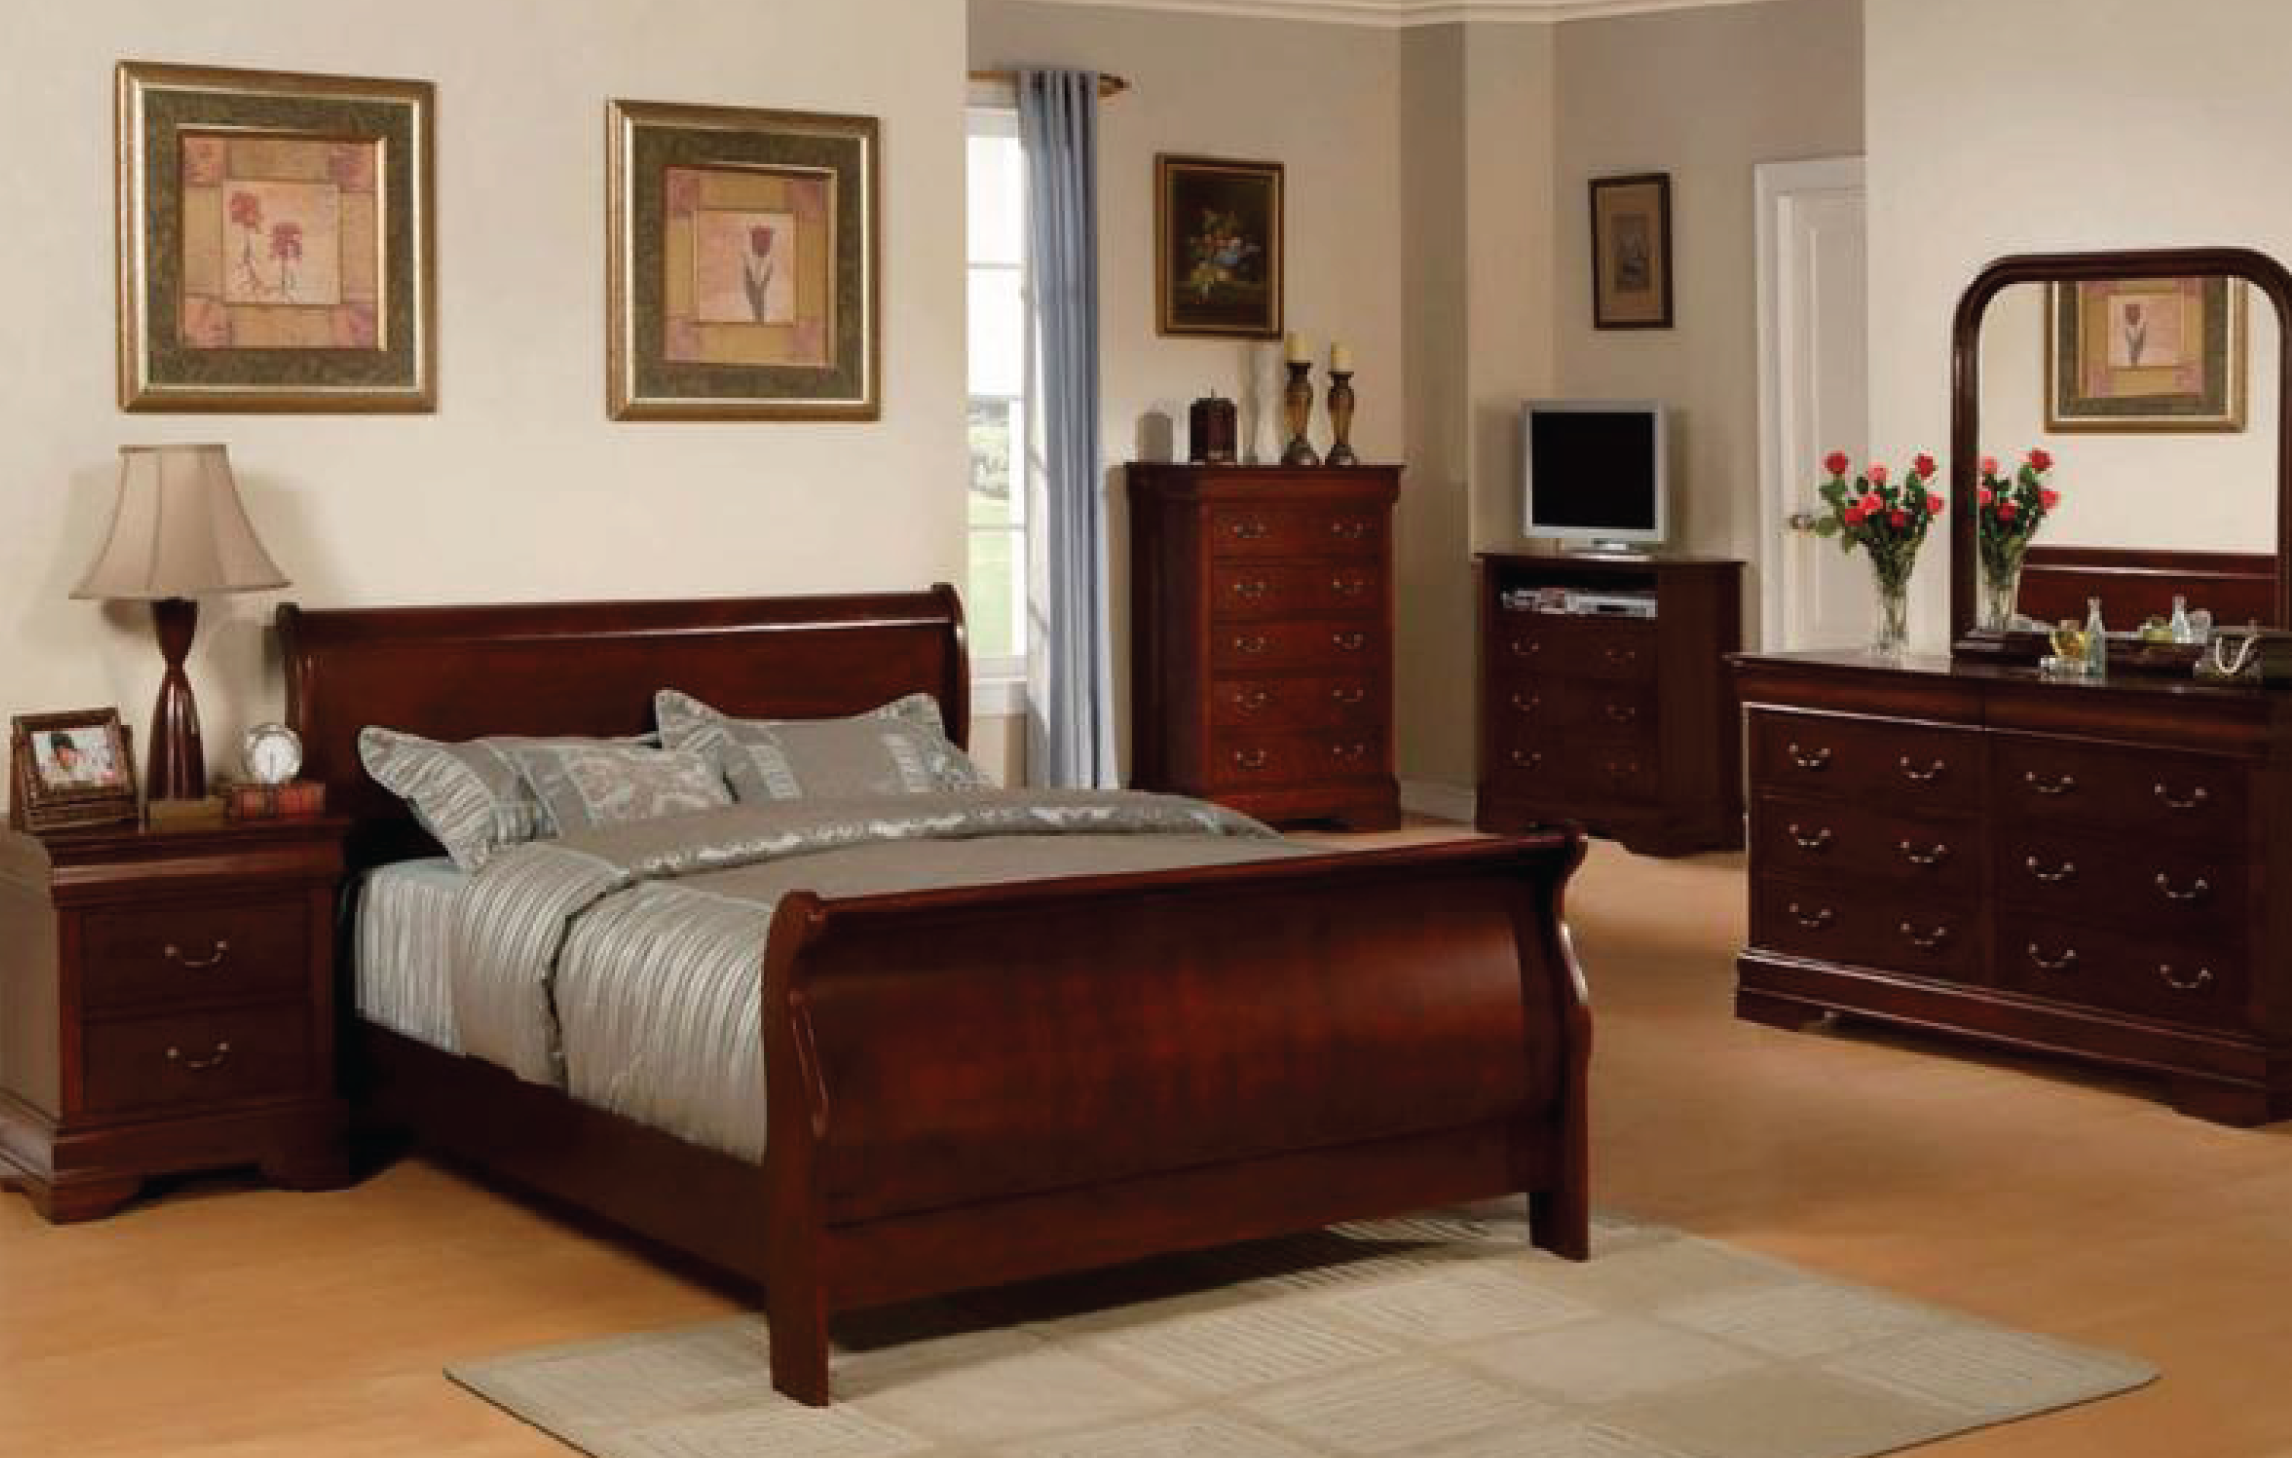 furniture manufacturers list manufacturers lists. Black Bedroom Furniture Sets. Home Design Ideas